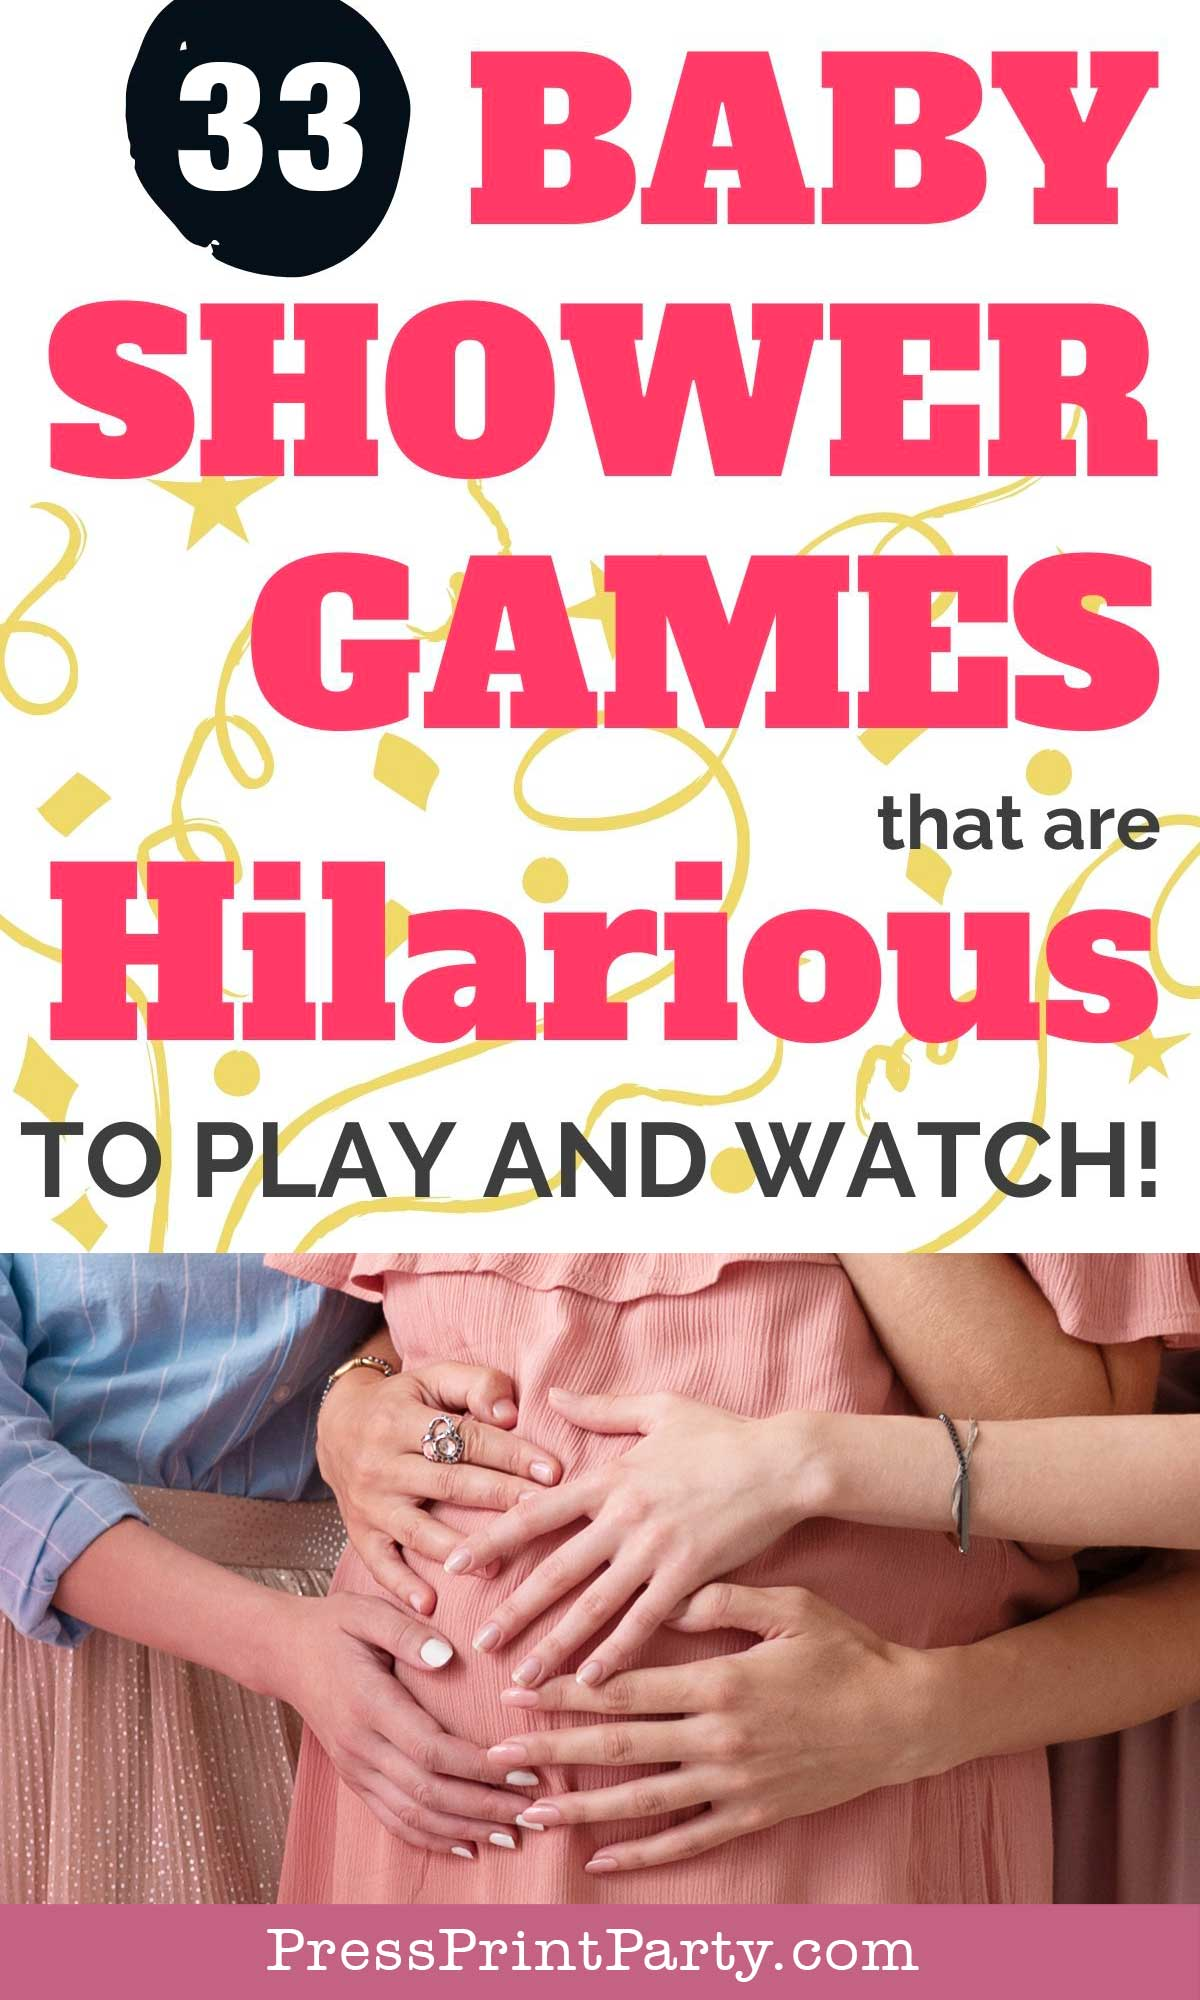 33 competitive baby shower games that are hilarious to play and watch - Press Print Party!